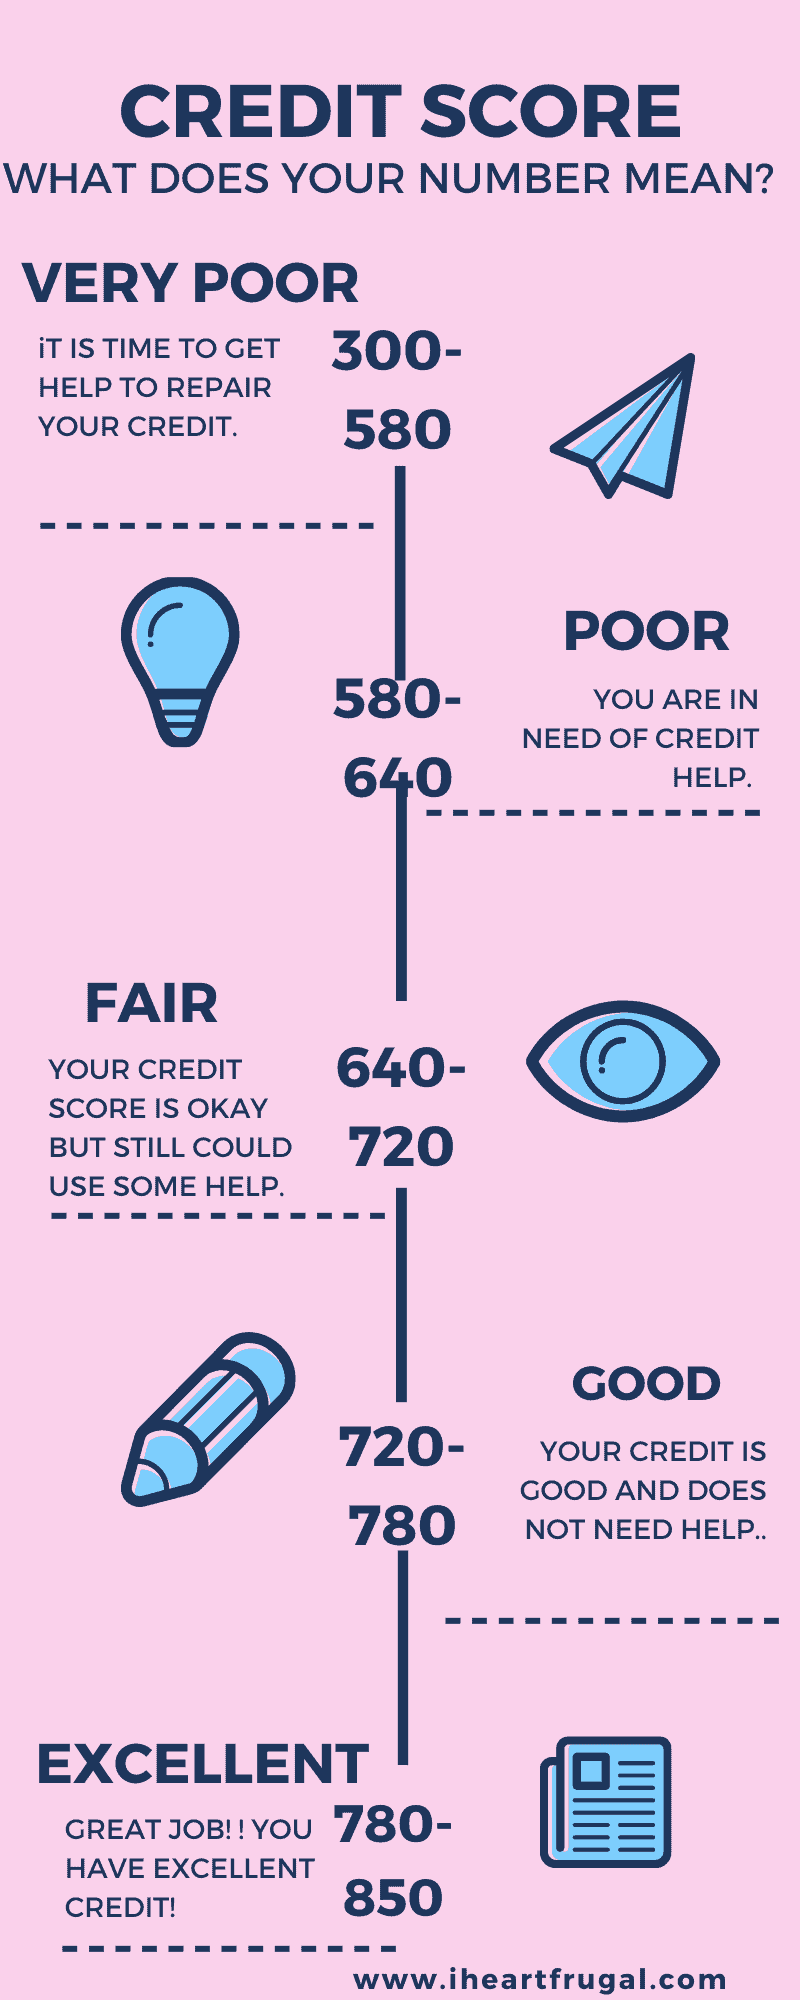 Do you need to raise your credit score by 200 points?